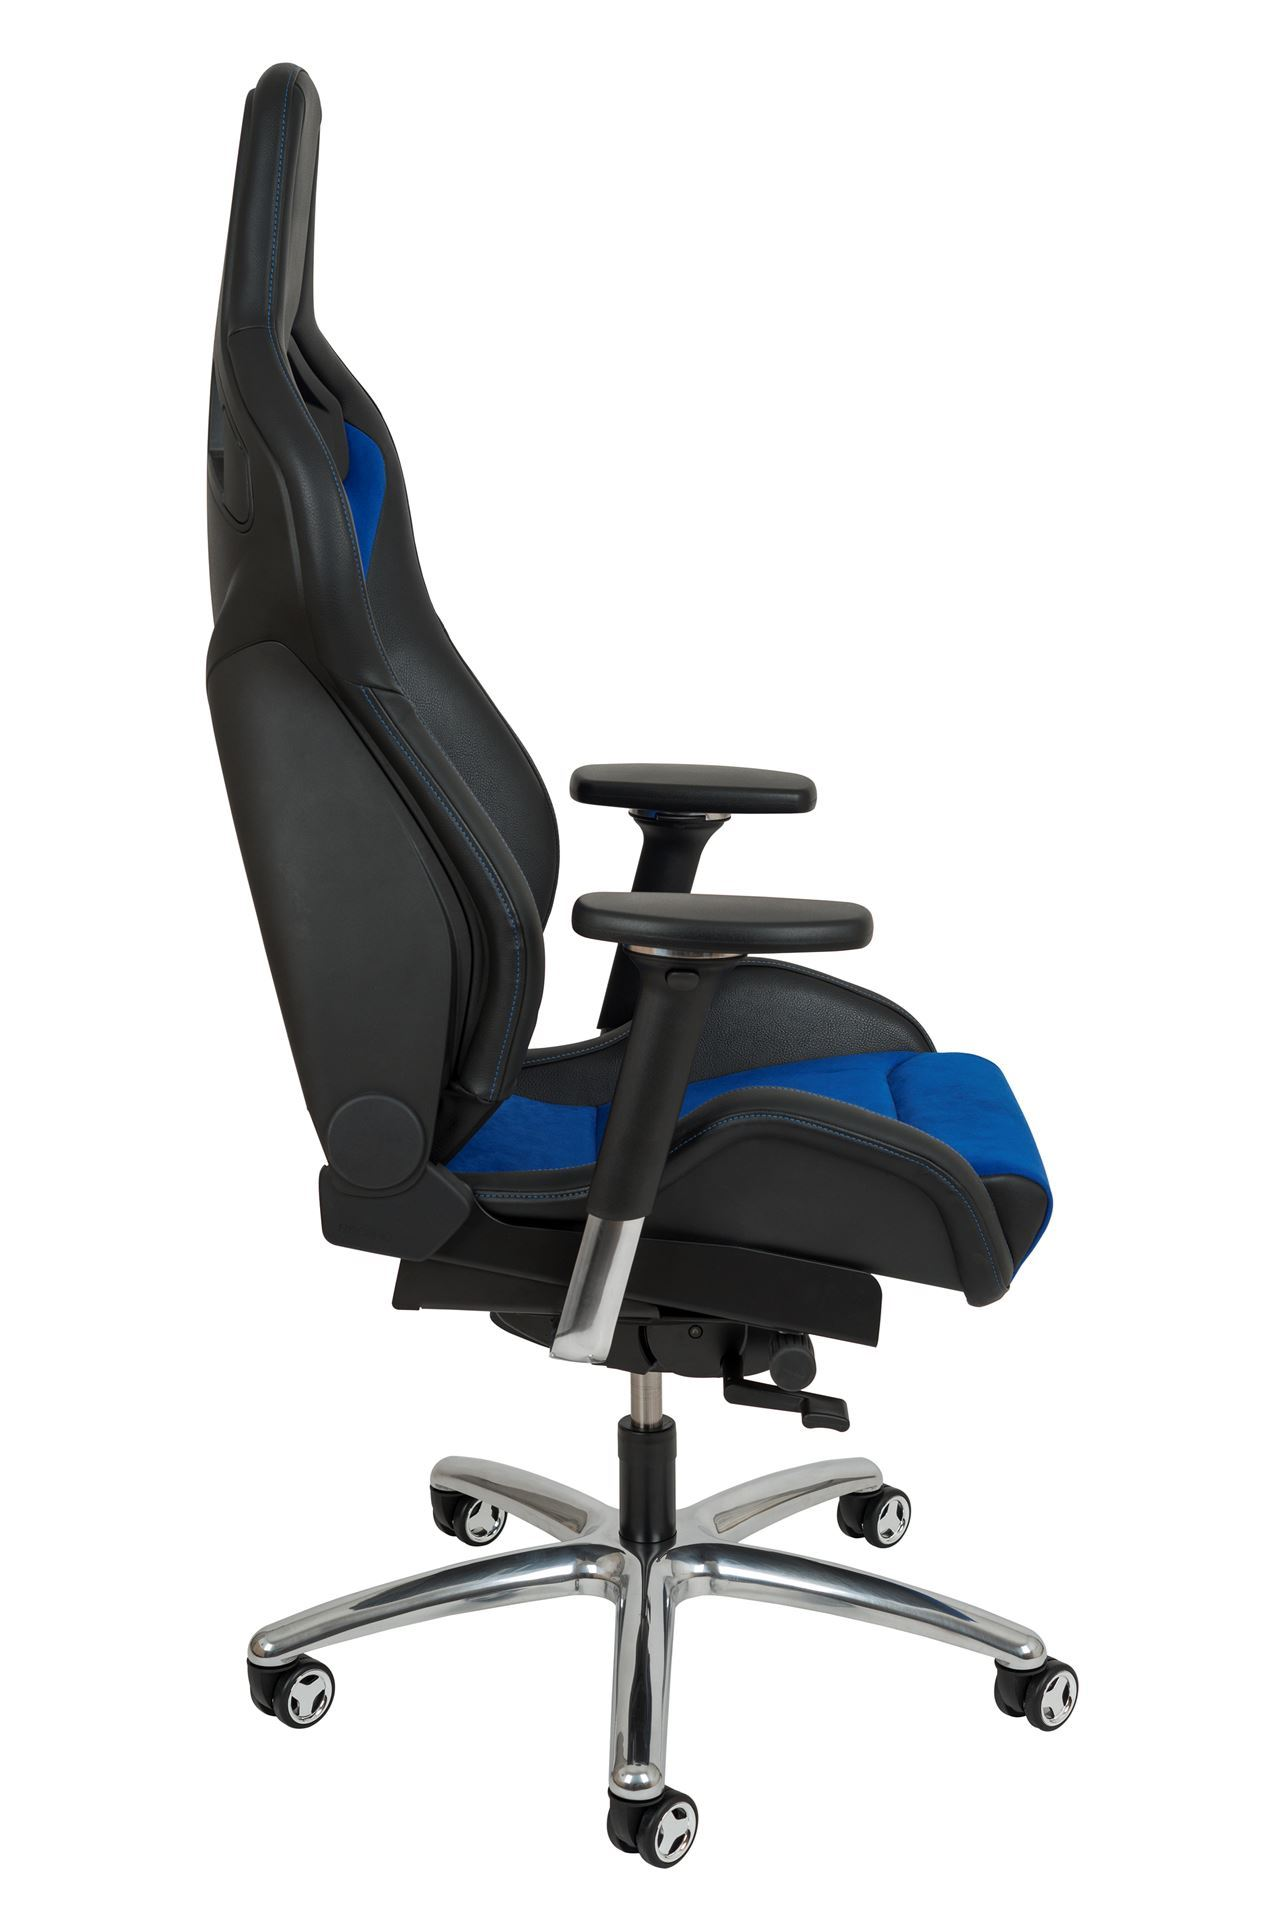 recaro office chair uk white folding covers bulk capital seating and vision accessories for picture of sportster cs